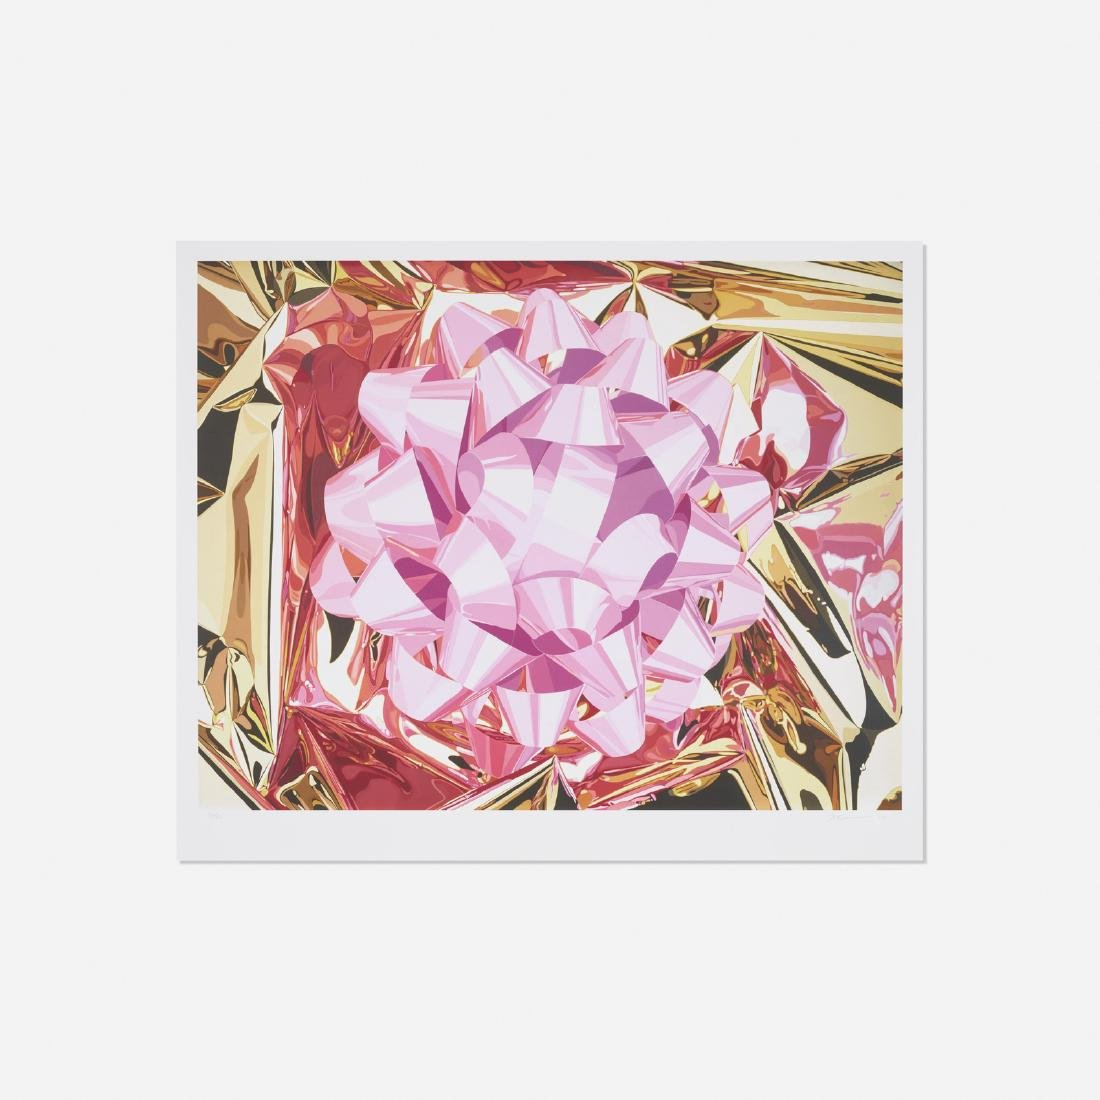 Jeff Koons, Pink Bow (from the Celebration Series)